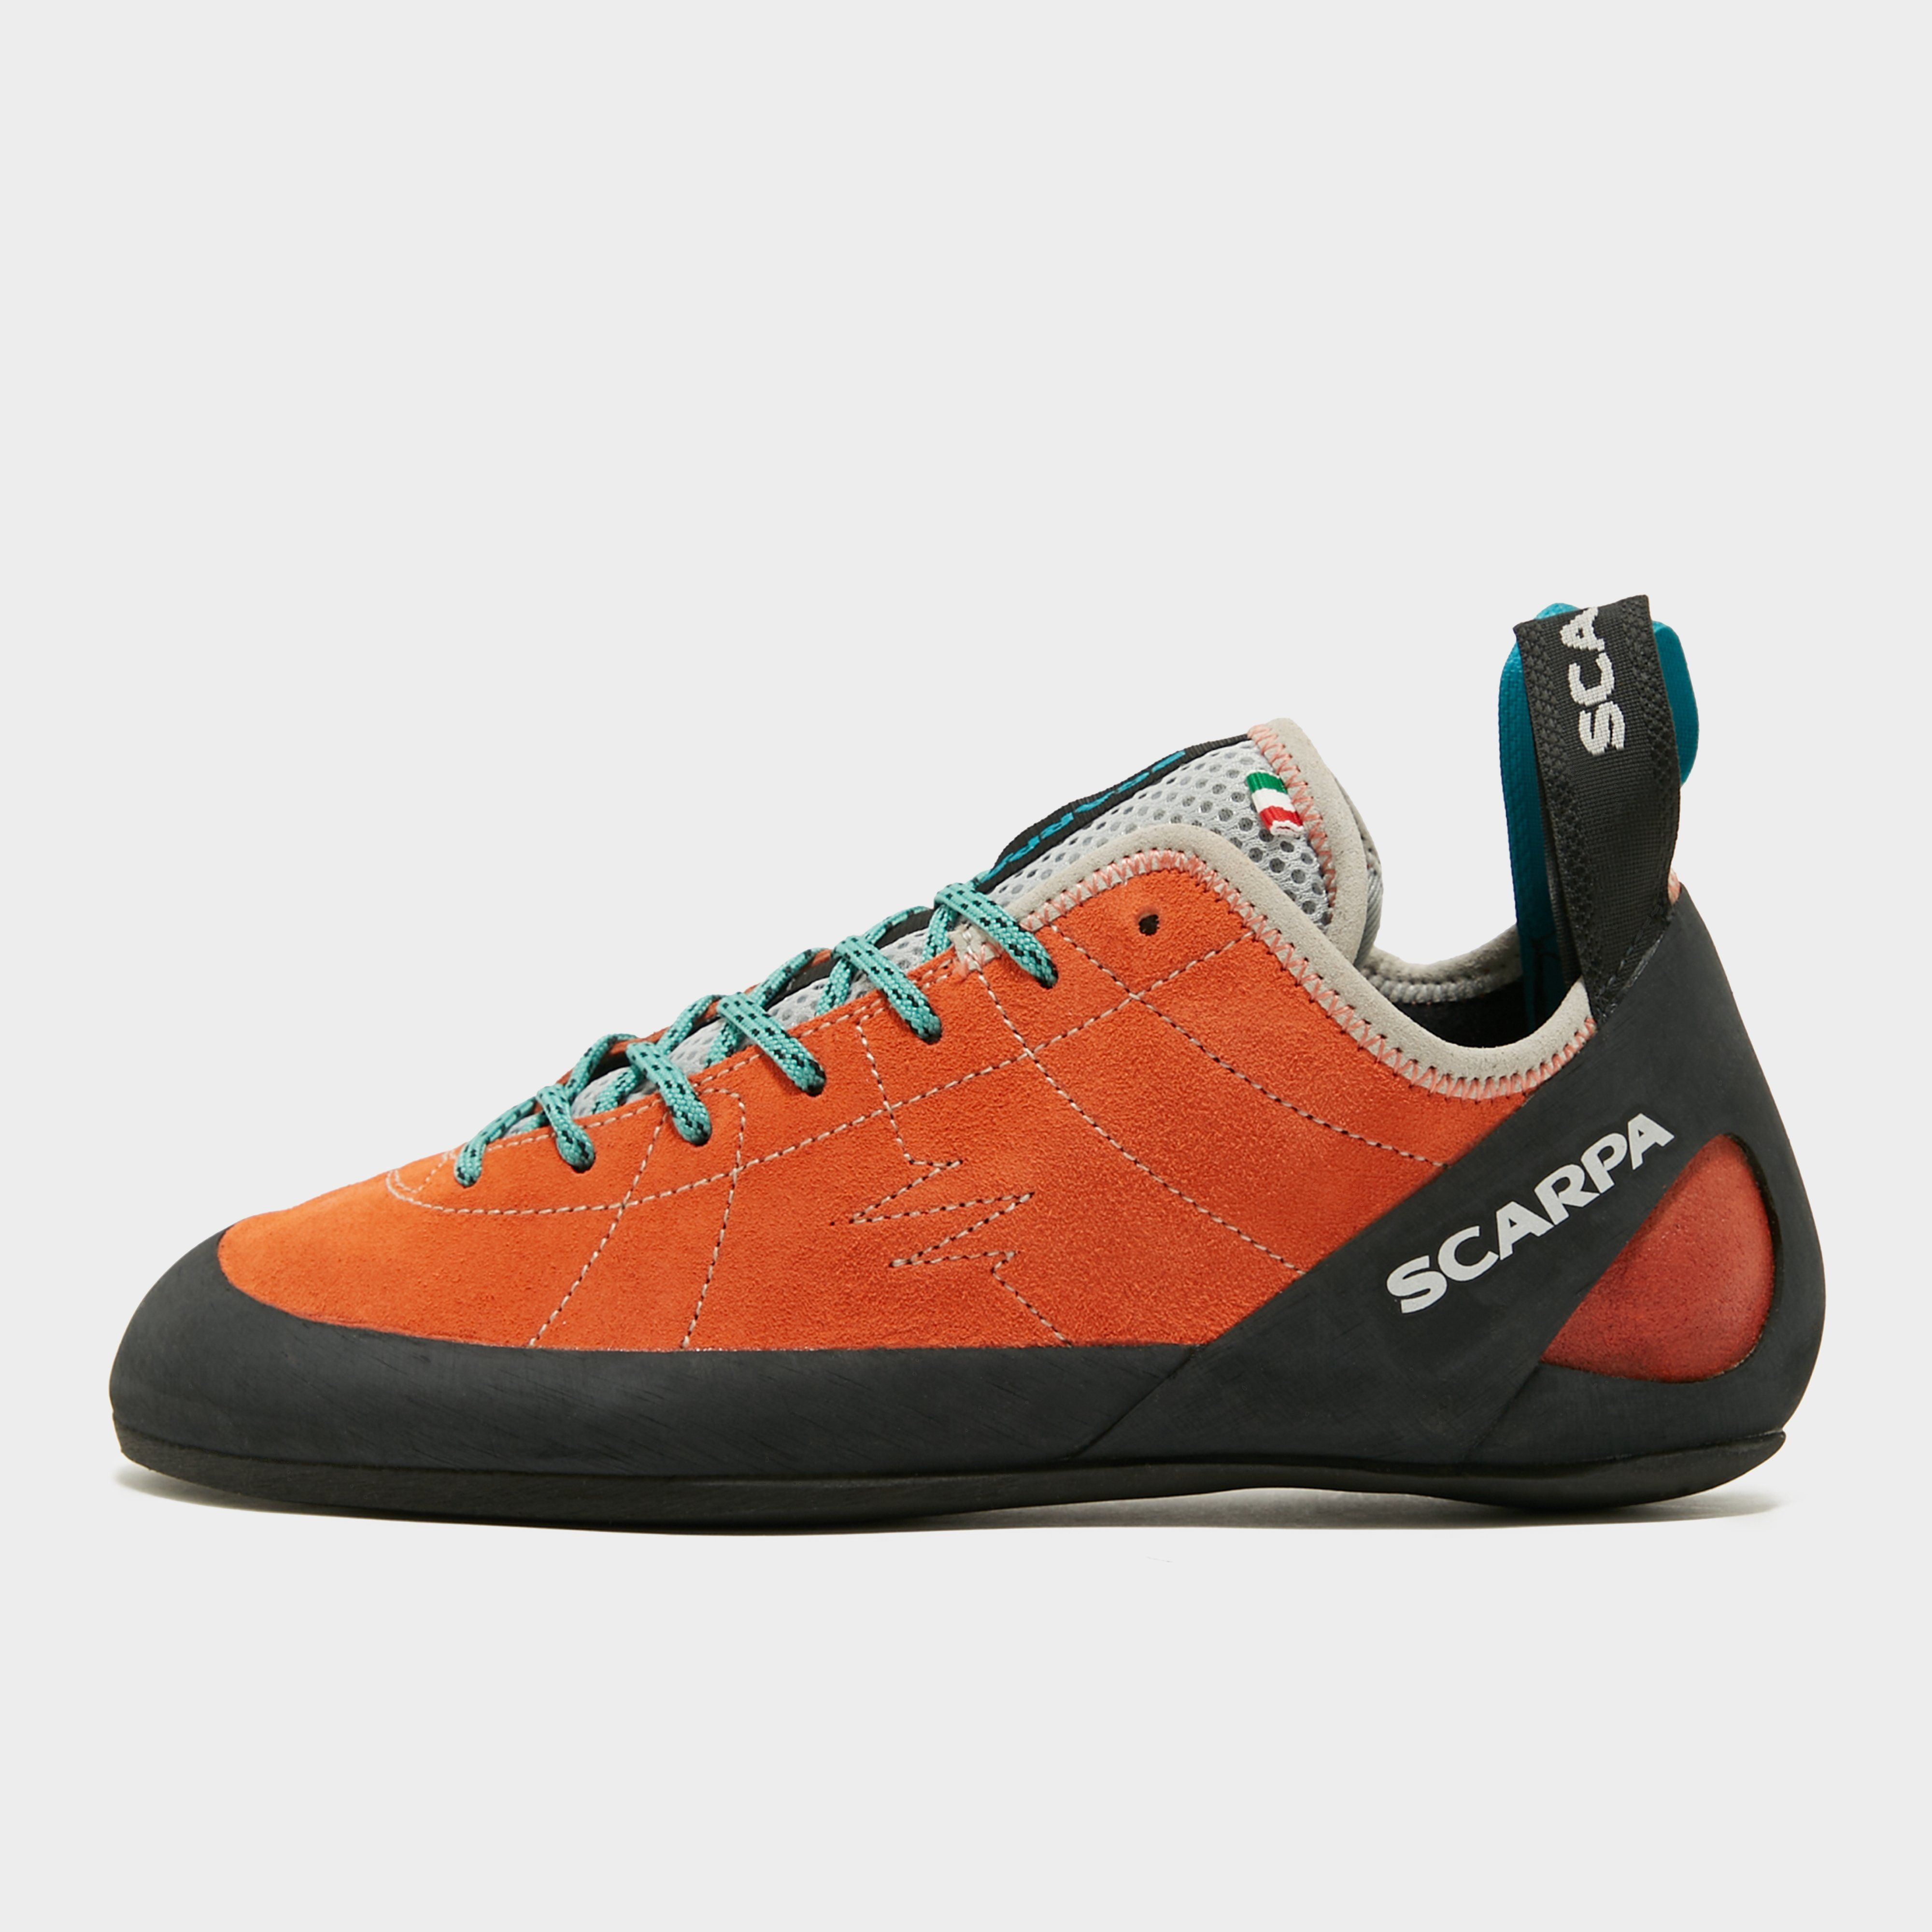 SCARPA Women's Helix Climbing Shoes